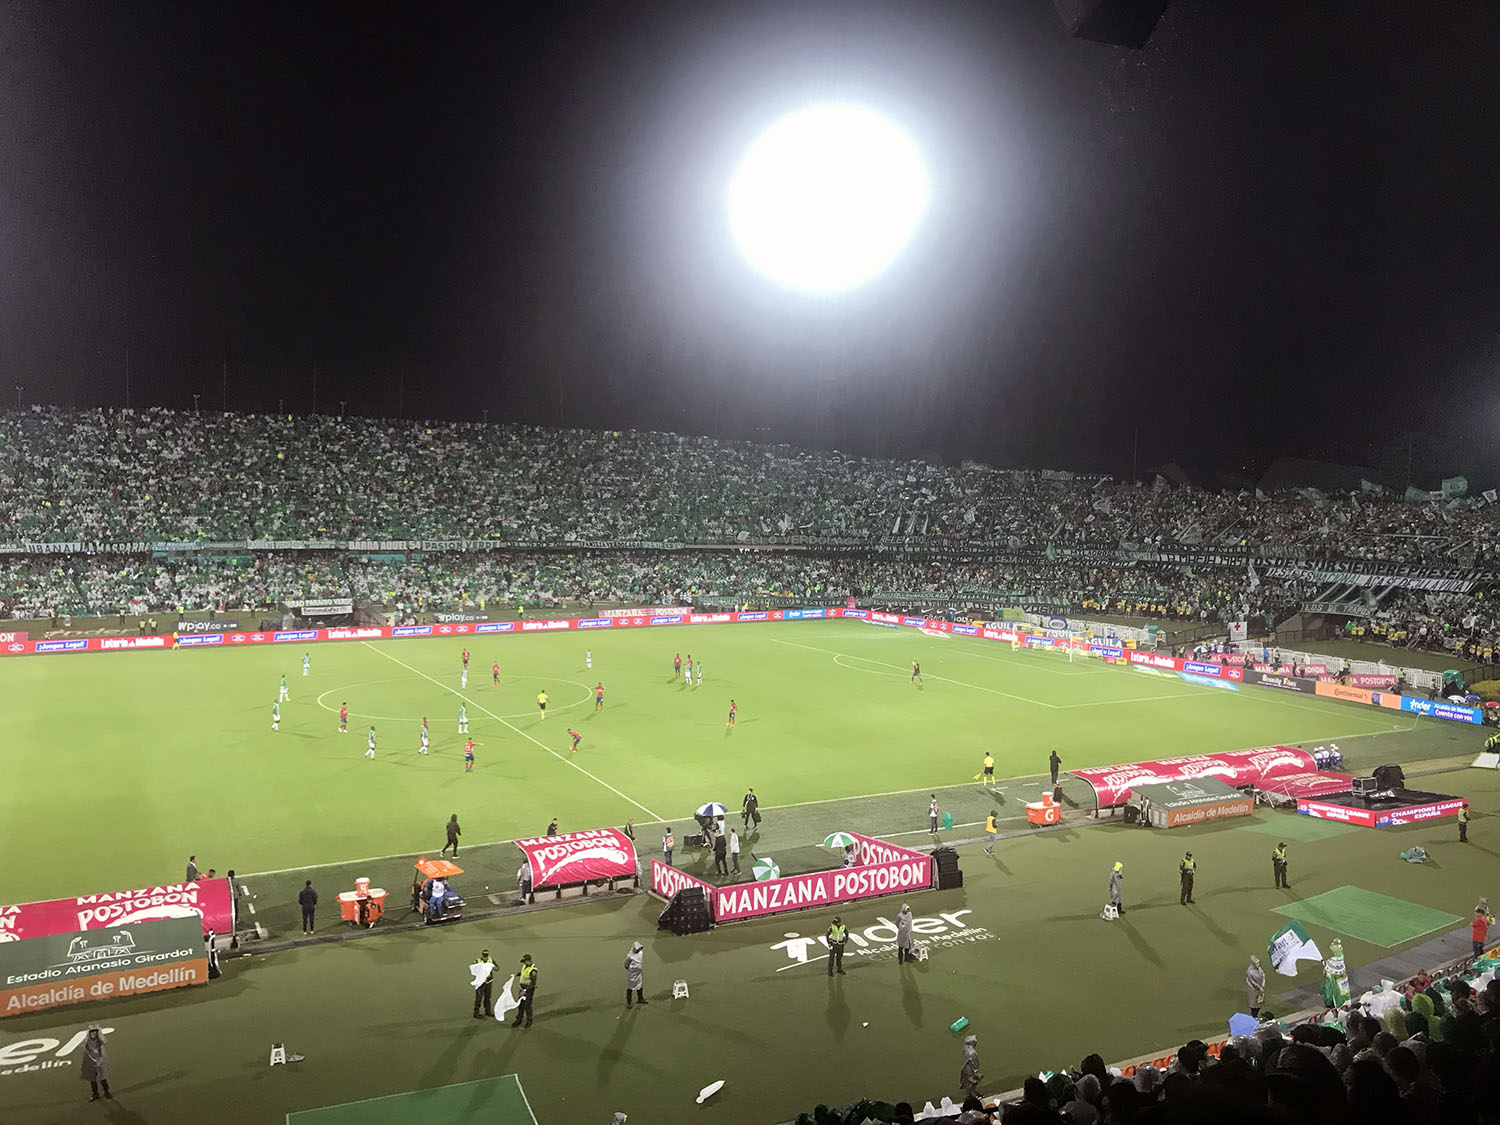 Football (soccer) game in stadiums in Medellin Colombia